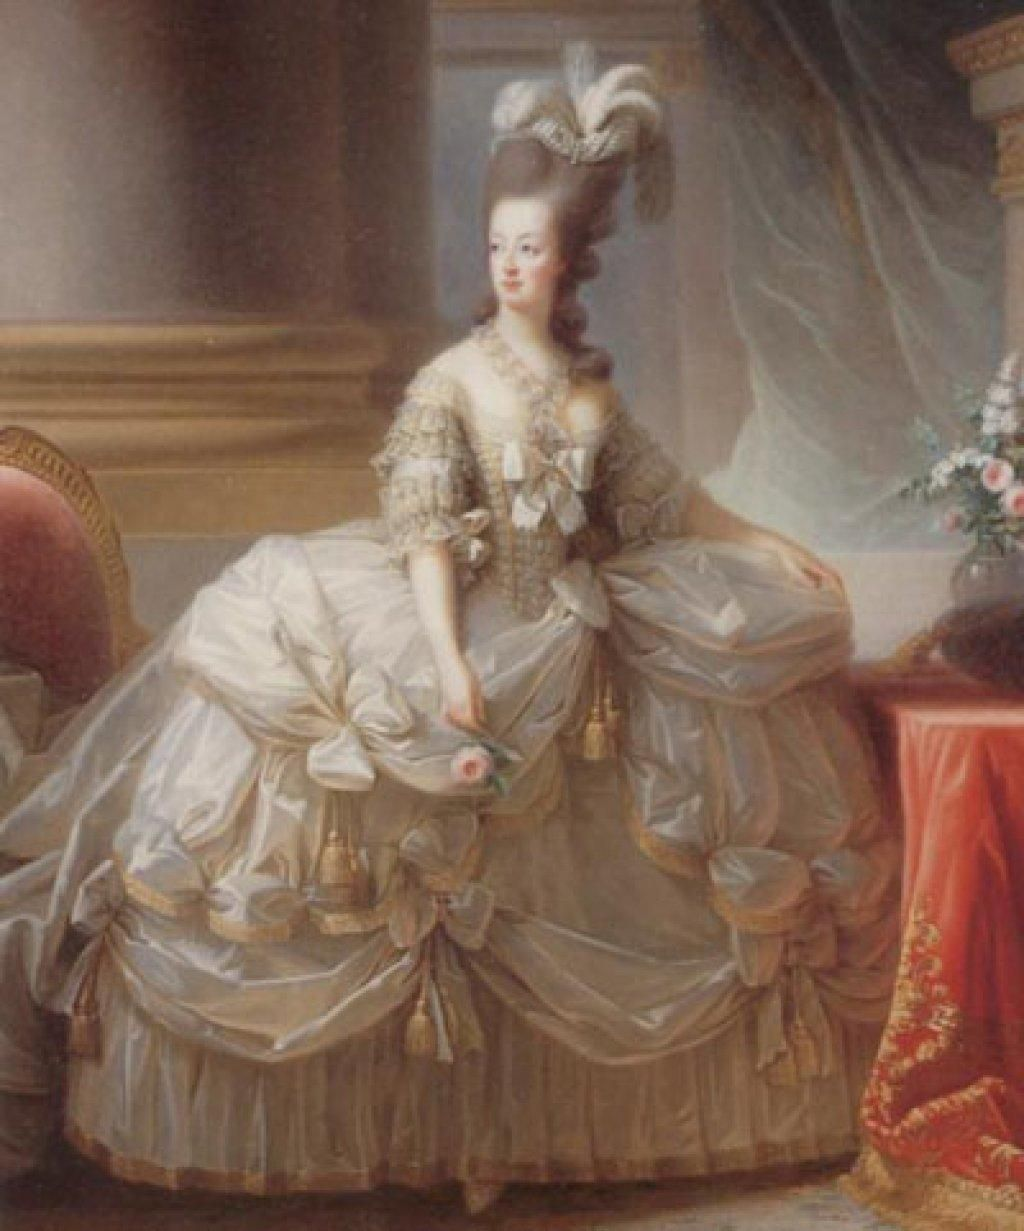 Marie Antoinette in her wedding gown